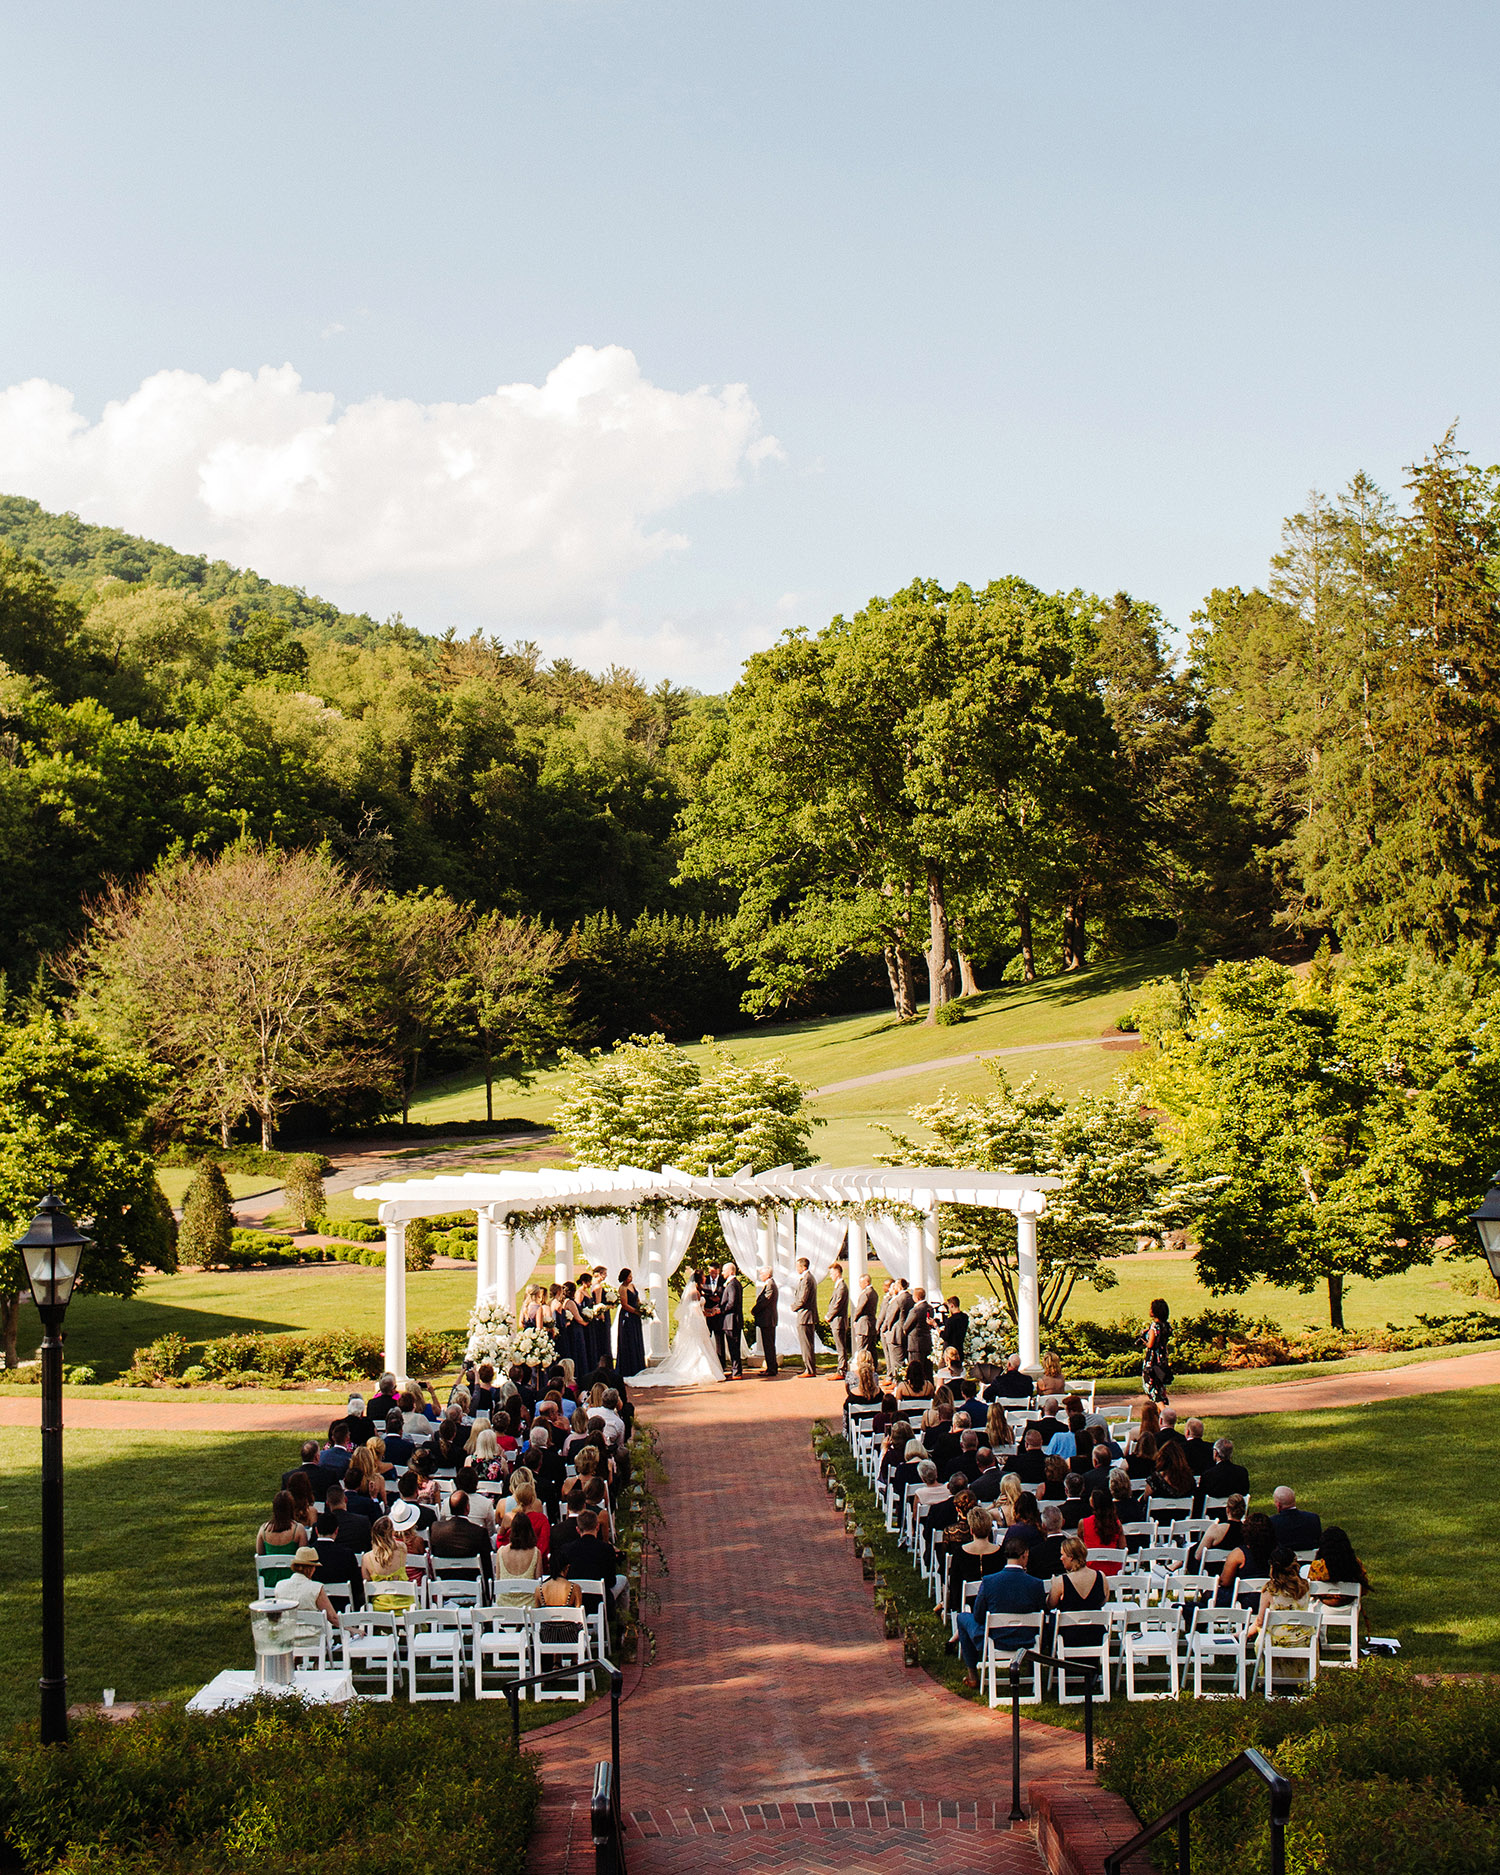 bryanna nick wedding couple outdoor ceremony